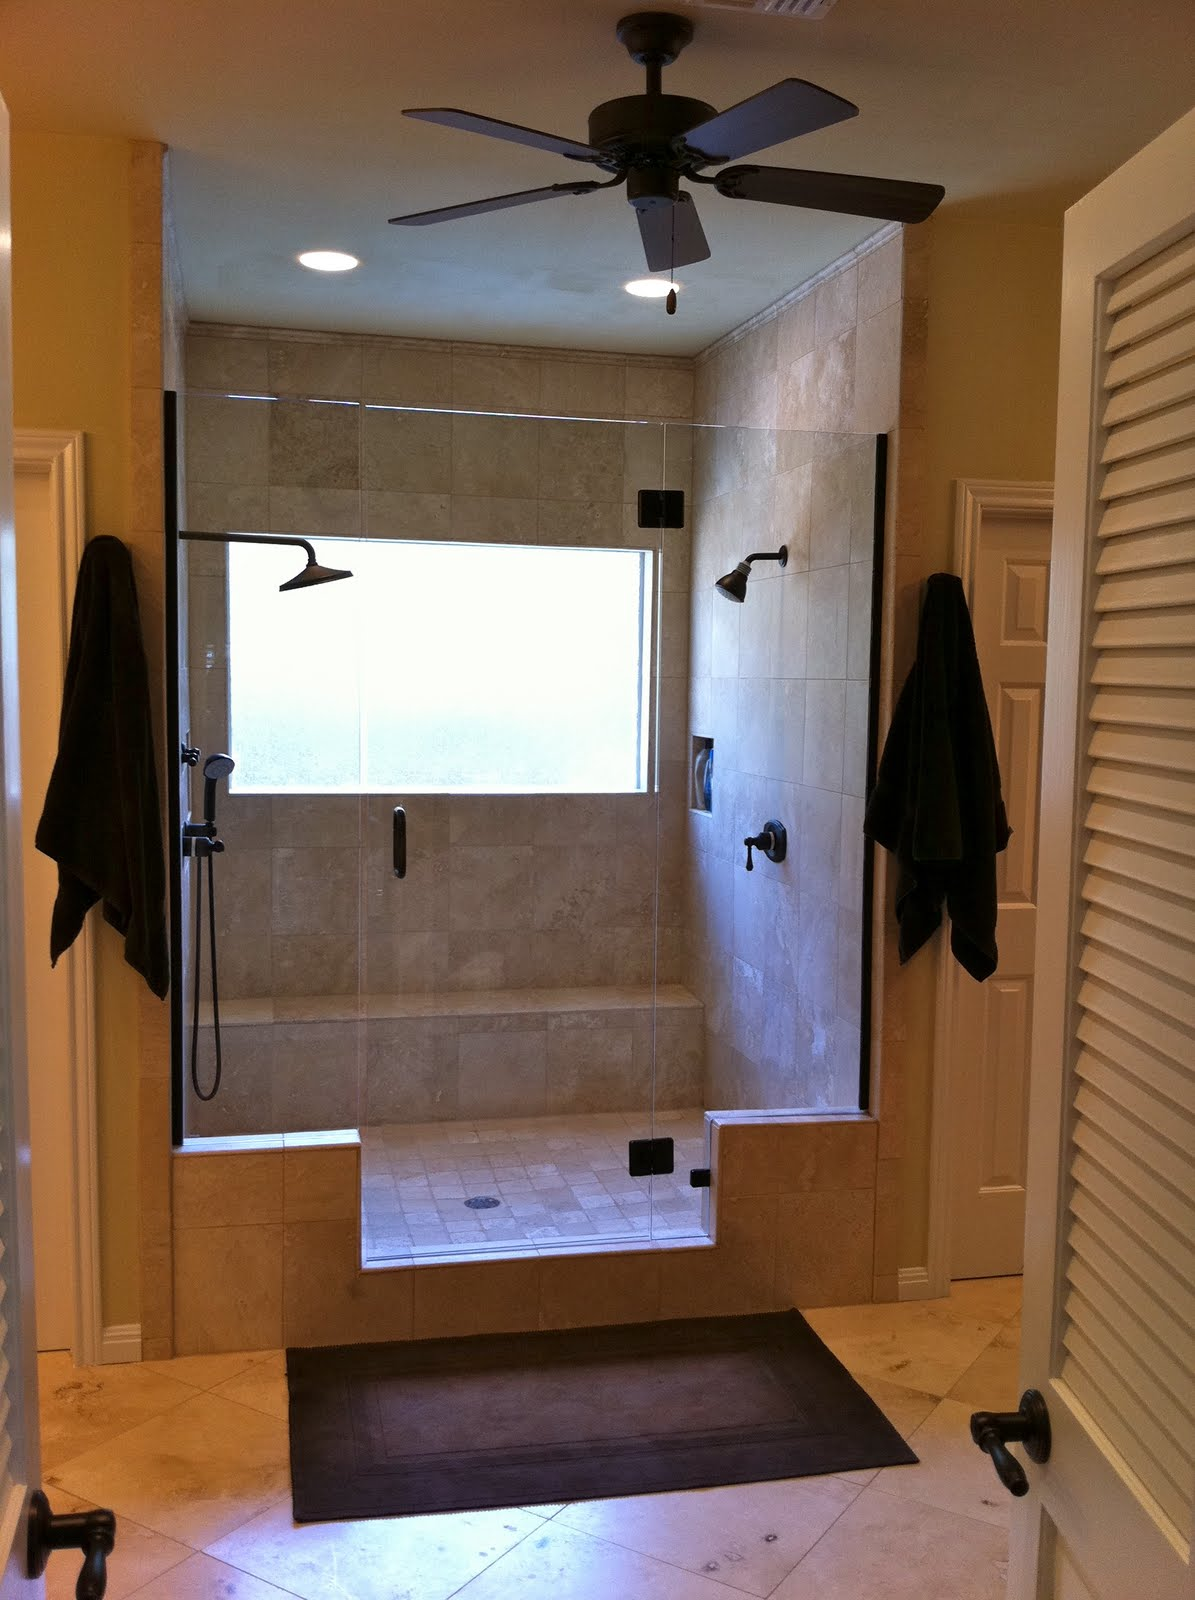 Bathroom Remodel No Tub remodelaholic | master bathroom remodel with double shower